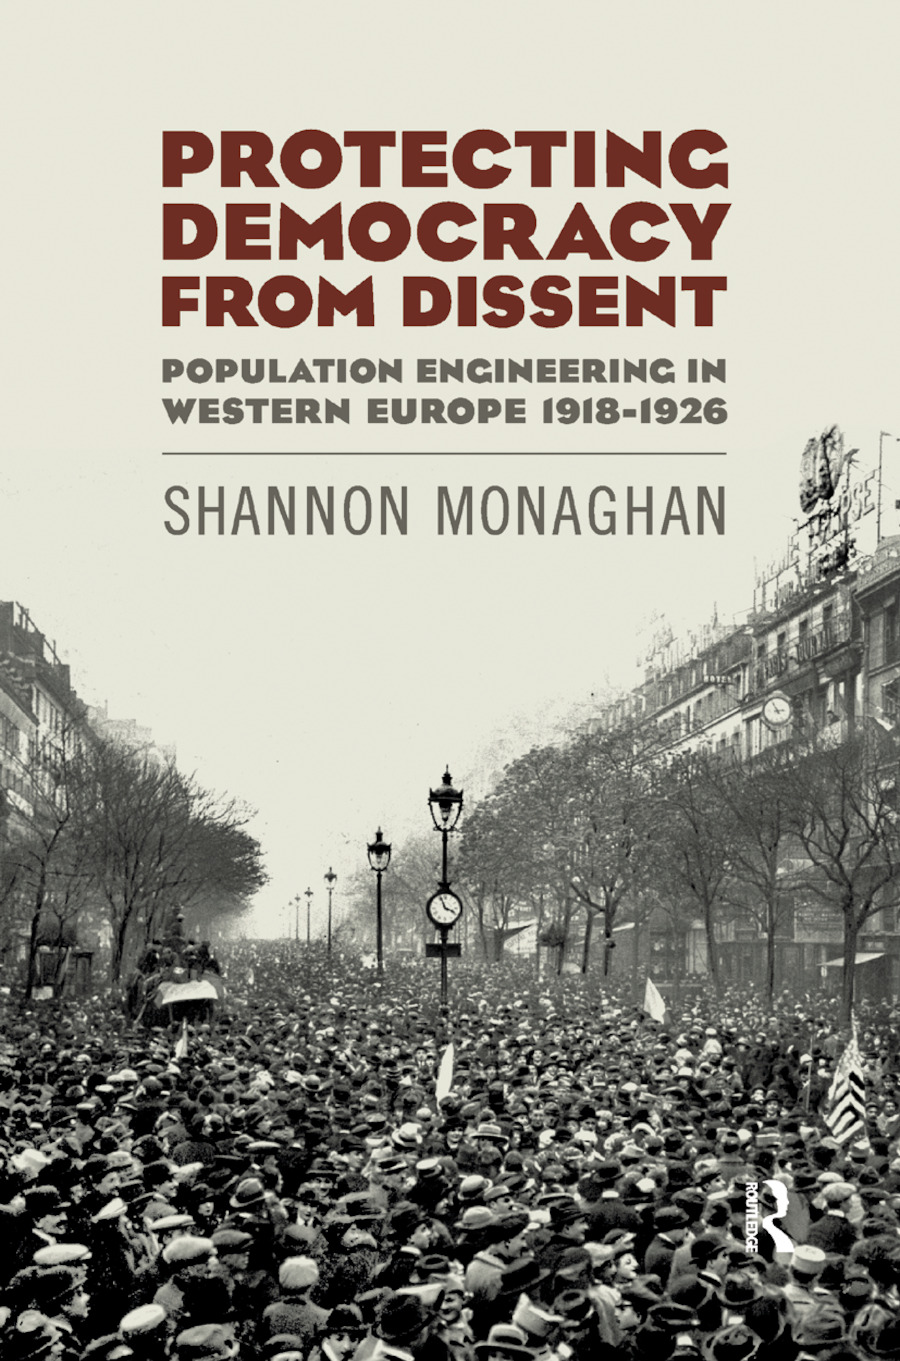 Protecting Democracy from Dissent: Population Engineering in Western Europe 1918-1926 book cover